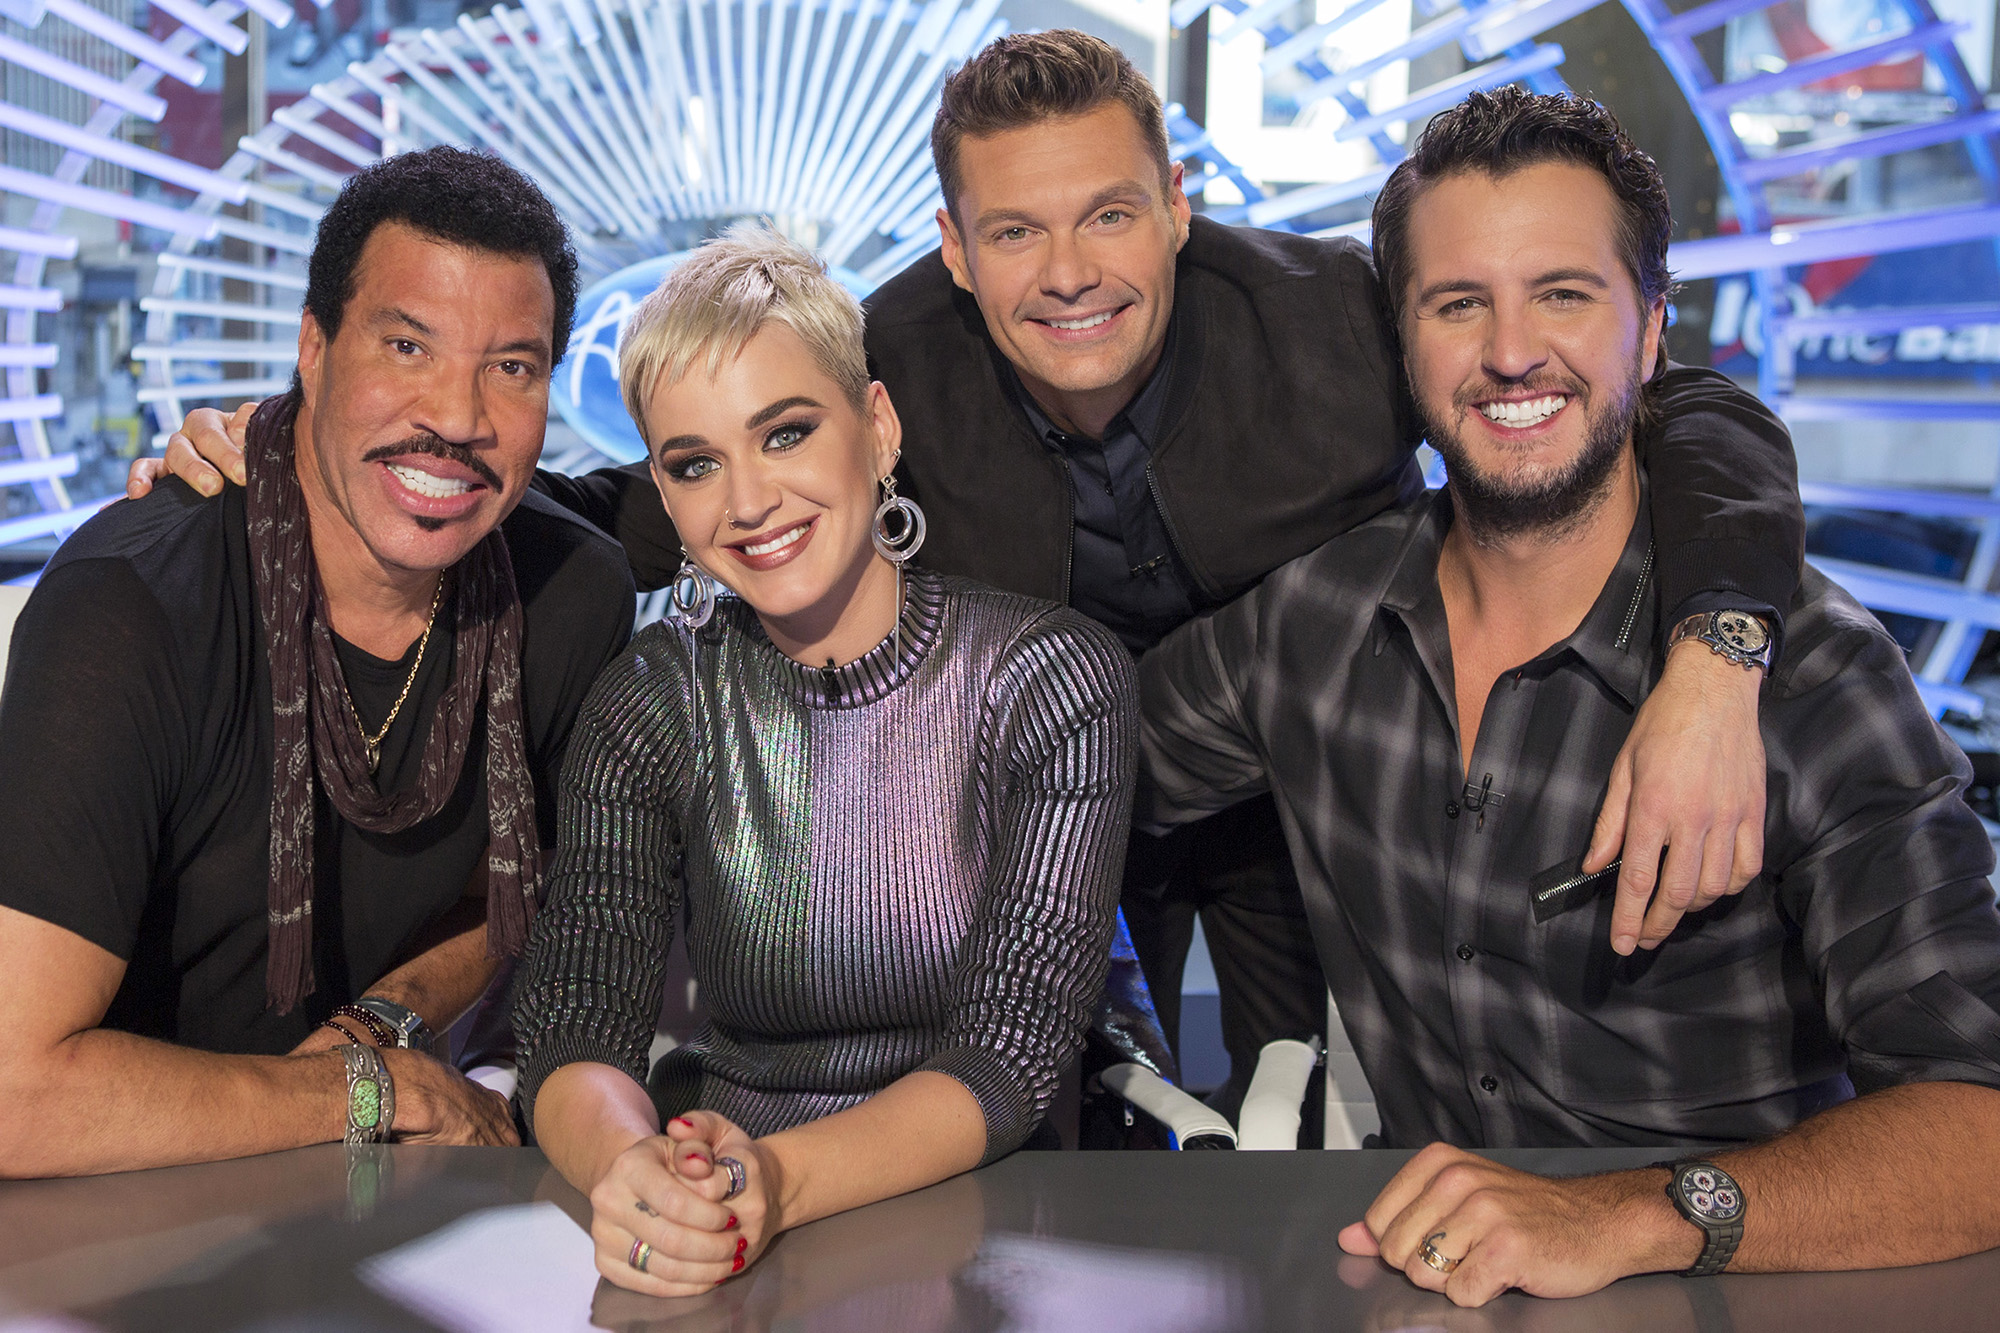 Has Worry About Bullying Tamed The New American Idol